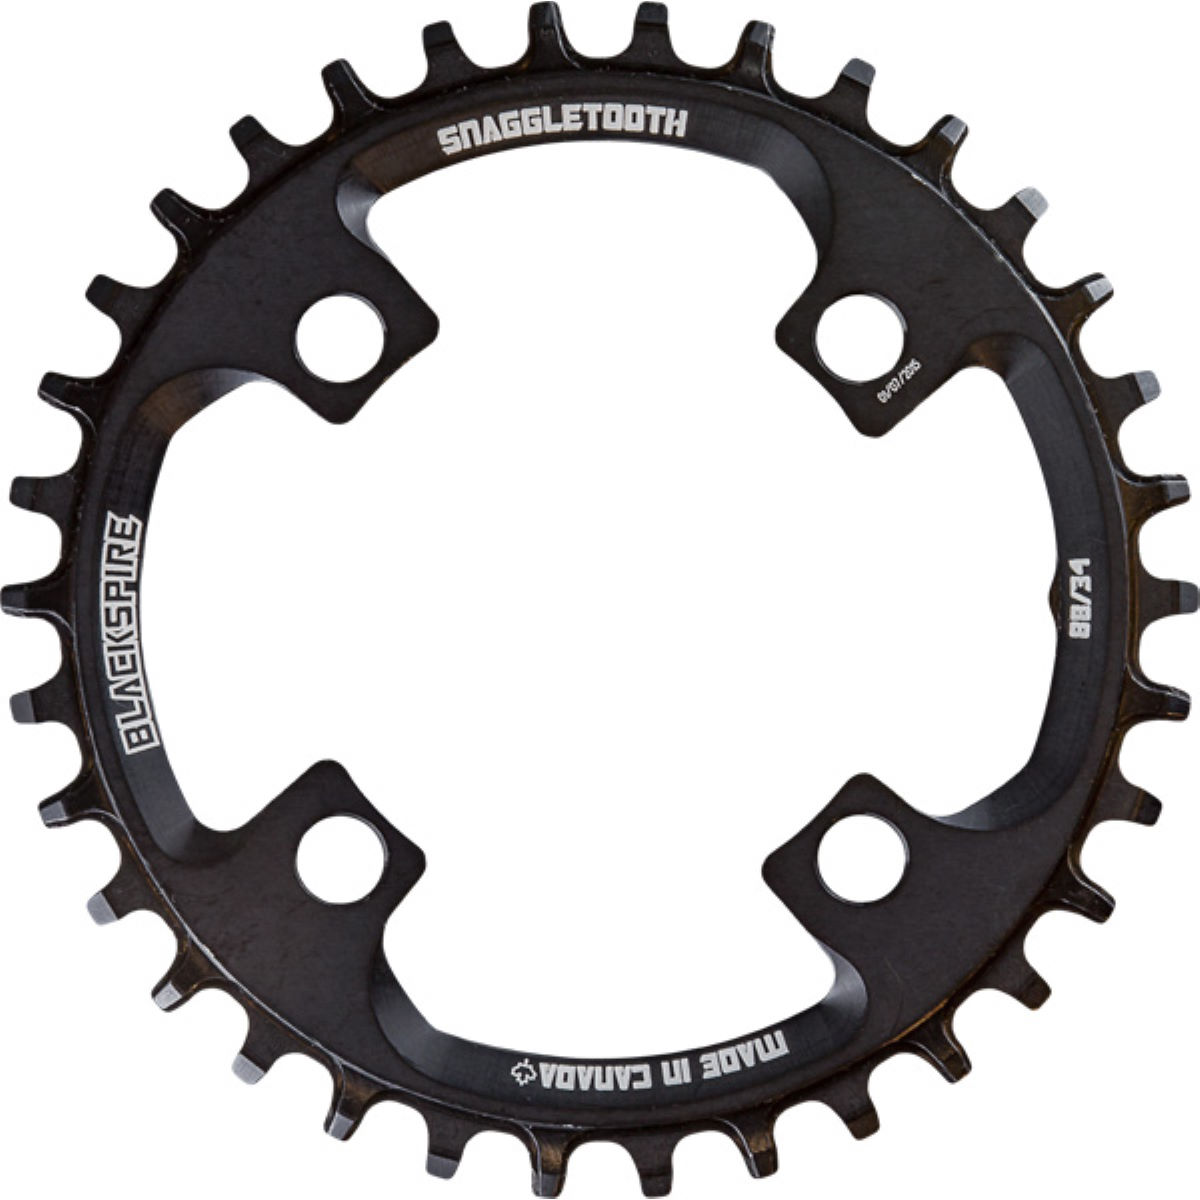 Blackspire Blackspire Snaggletooth NarrowWide Chainring FCM985   Chain Rings